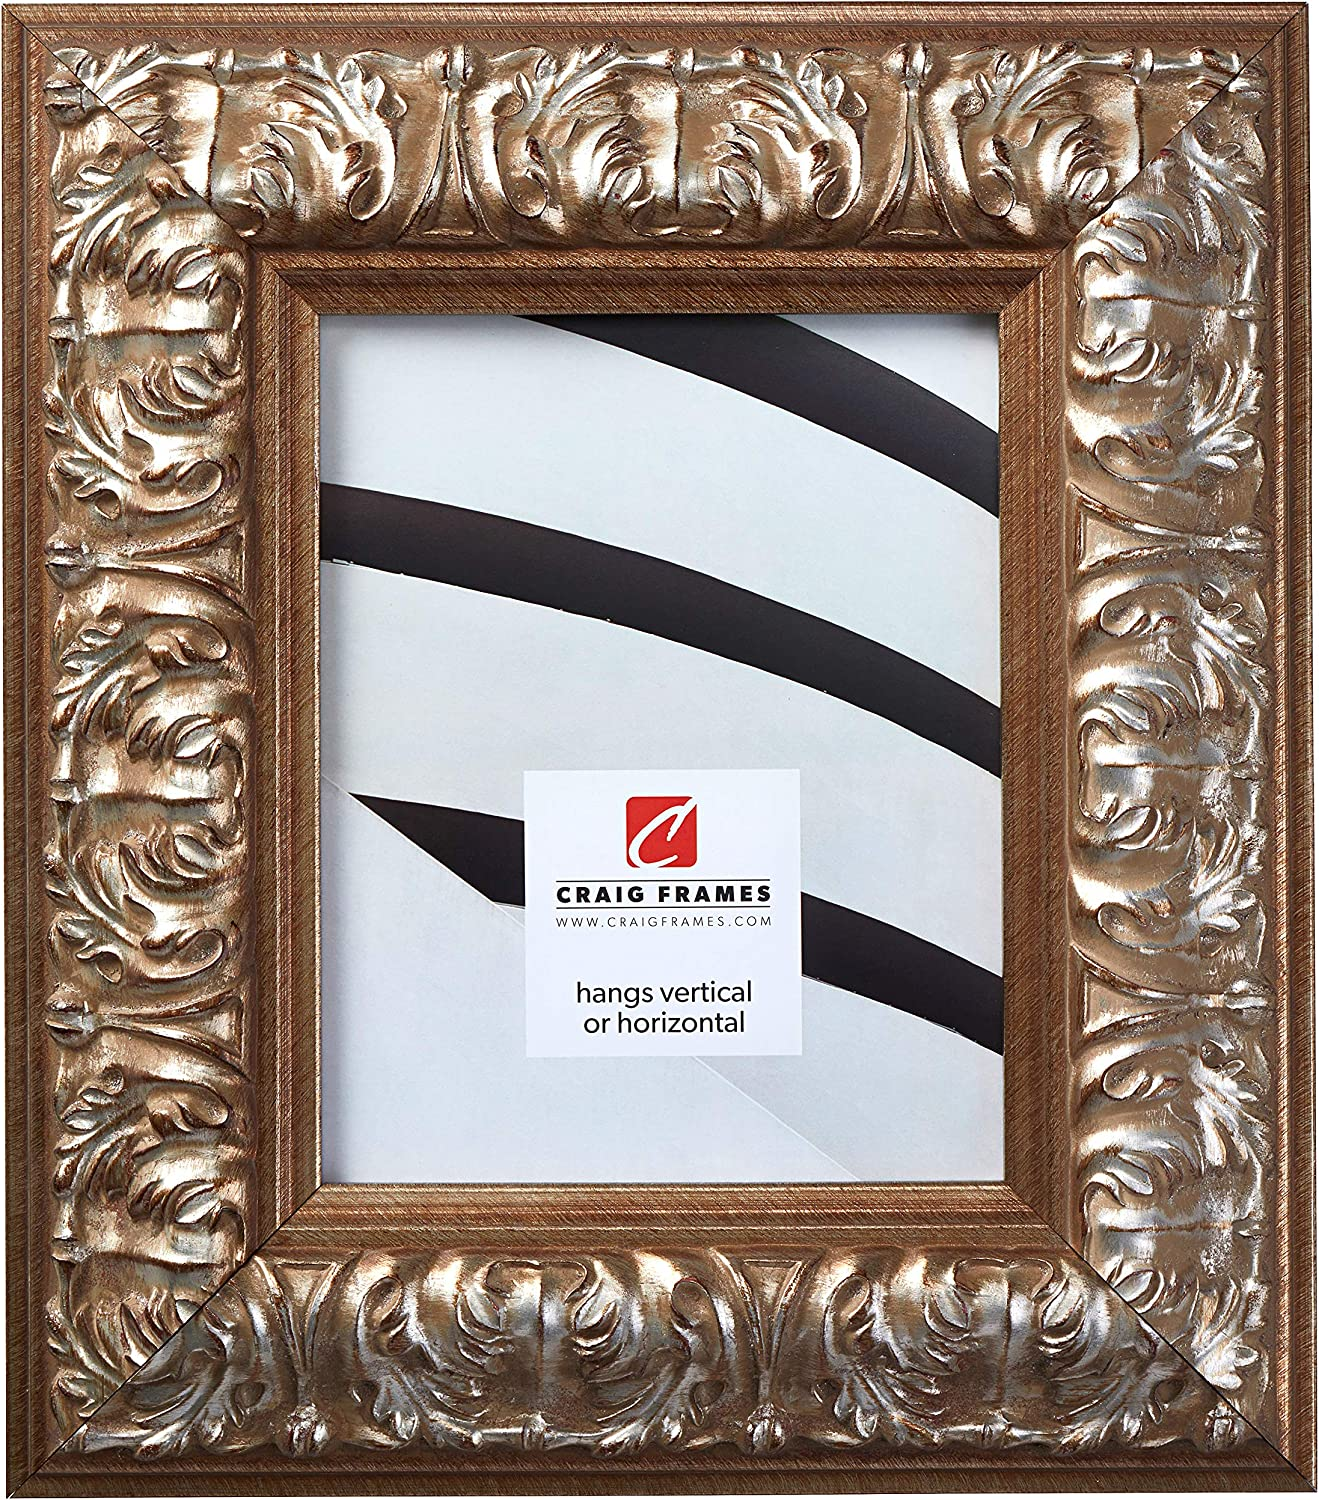 Craig Frames Long-awaited Barroco Antique Silver Baroque b Sales of SALE items from new works 12 Picture Frame